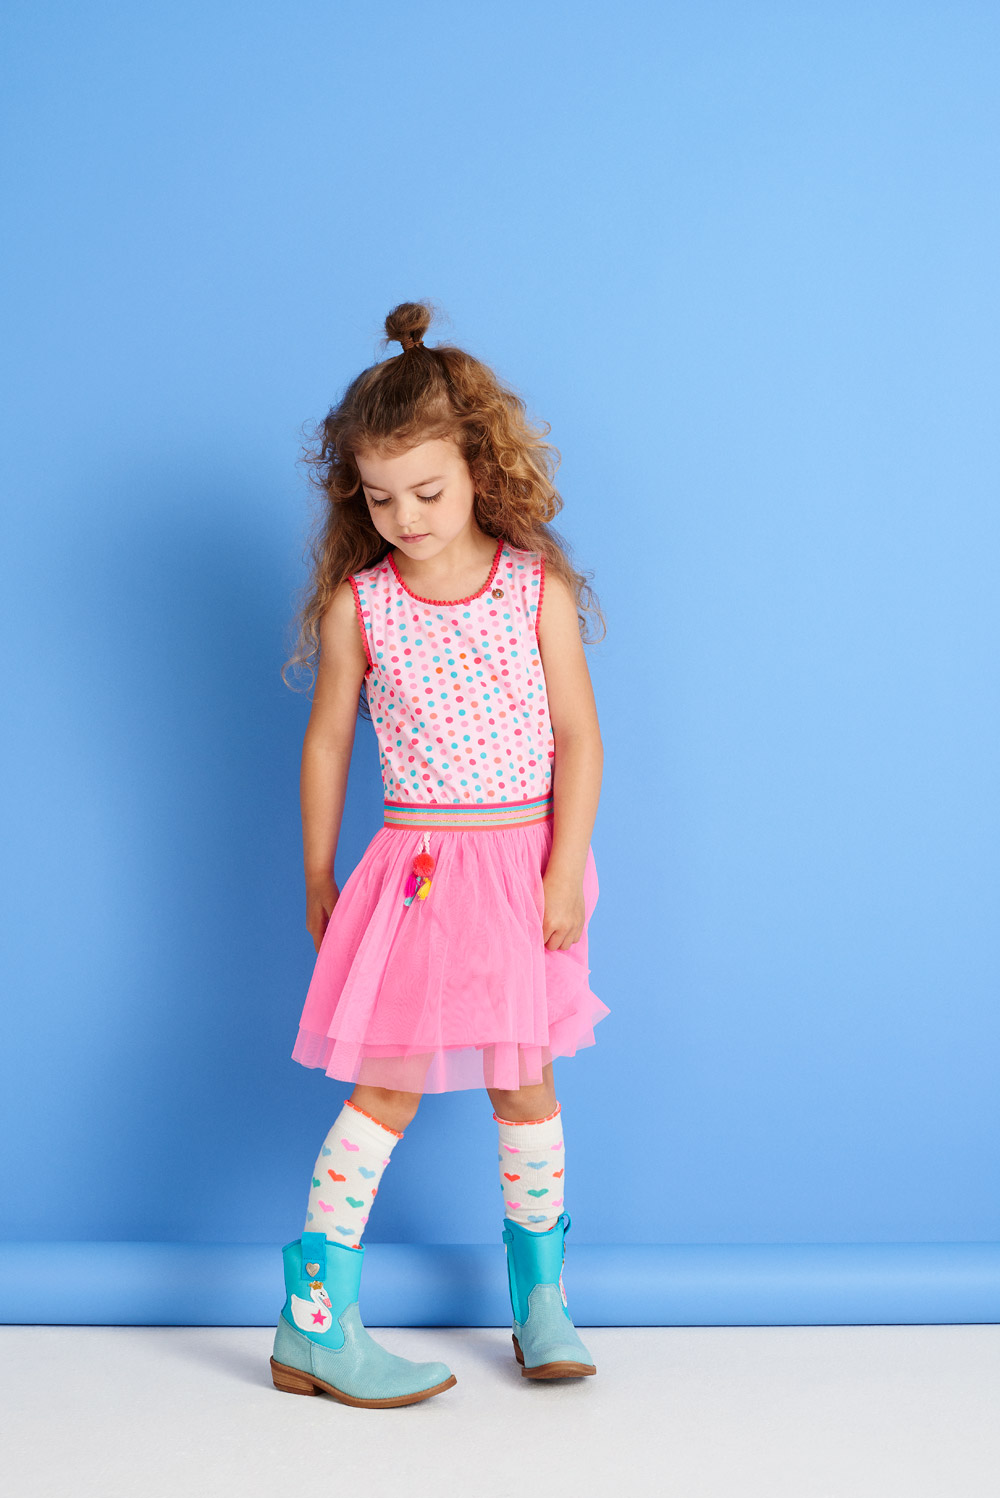 DRESS-843,-SOCKS-893,-BOOTS-945.jpg